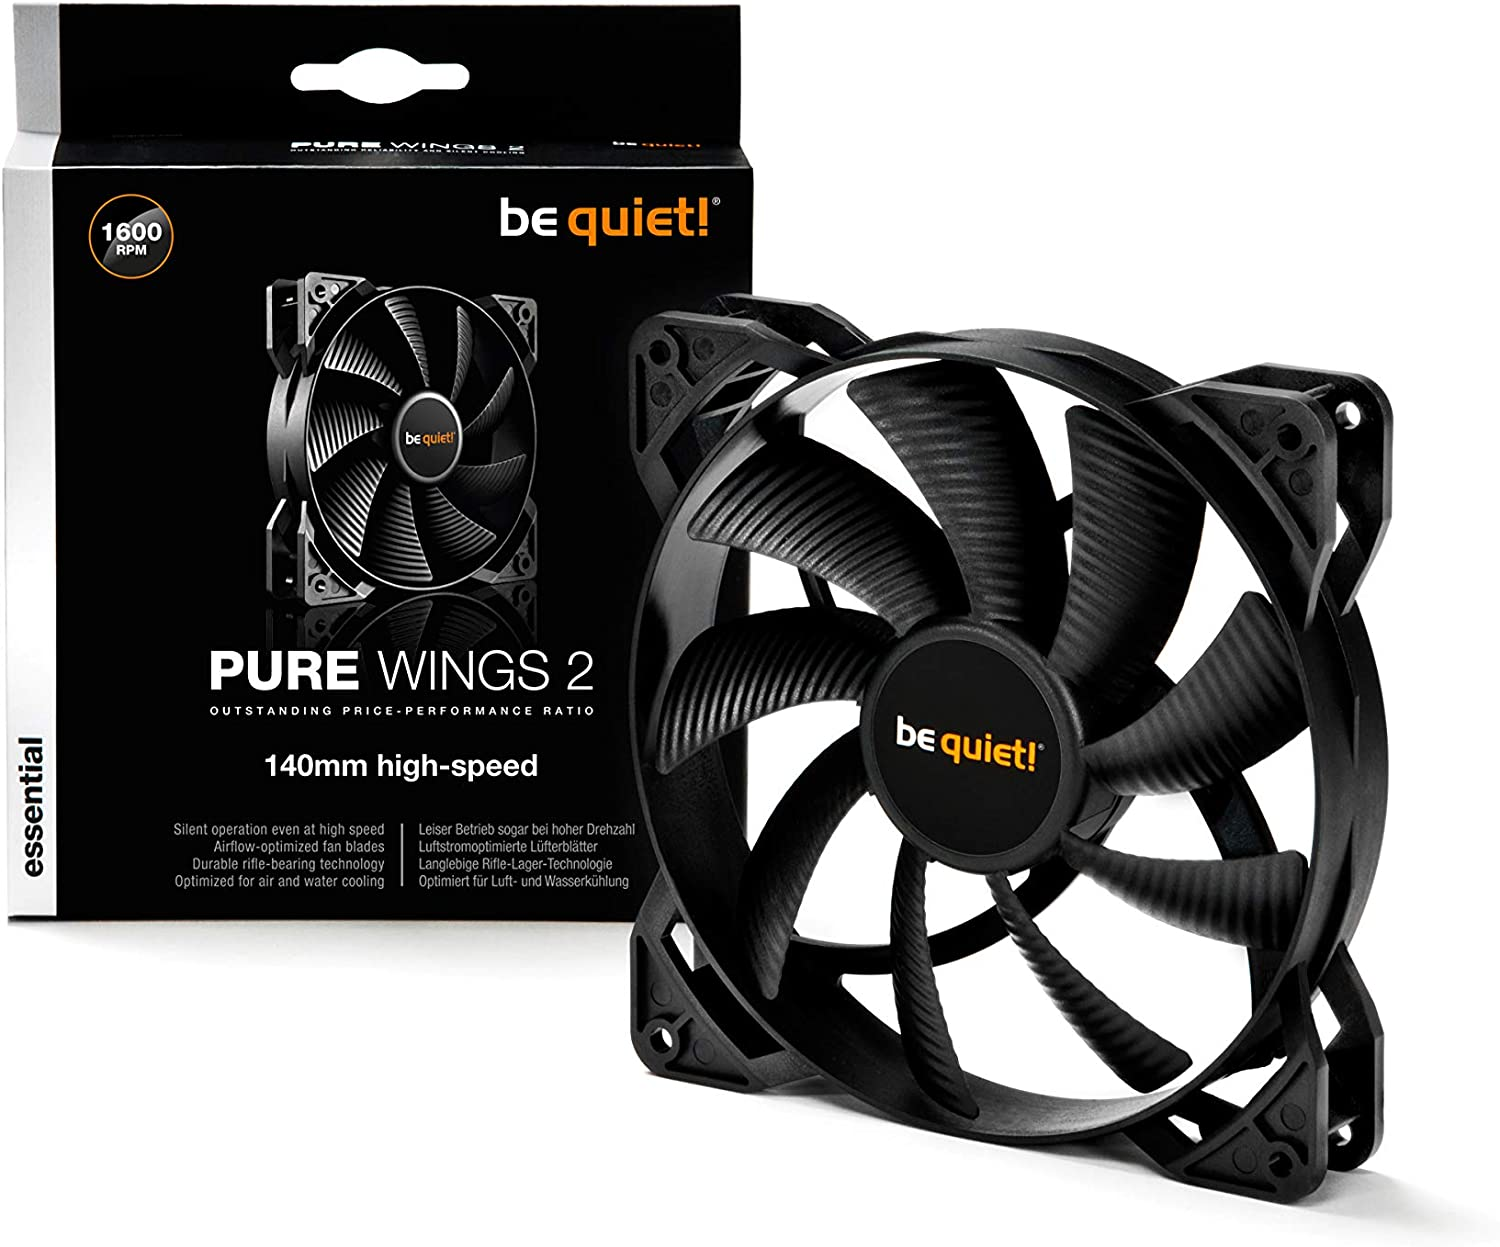 Praised PC Fan 12V 12cm Cooling Cooler Fan with Controller for Computer Silent Gaming Case Blue Light